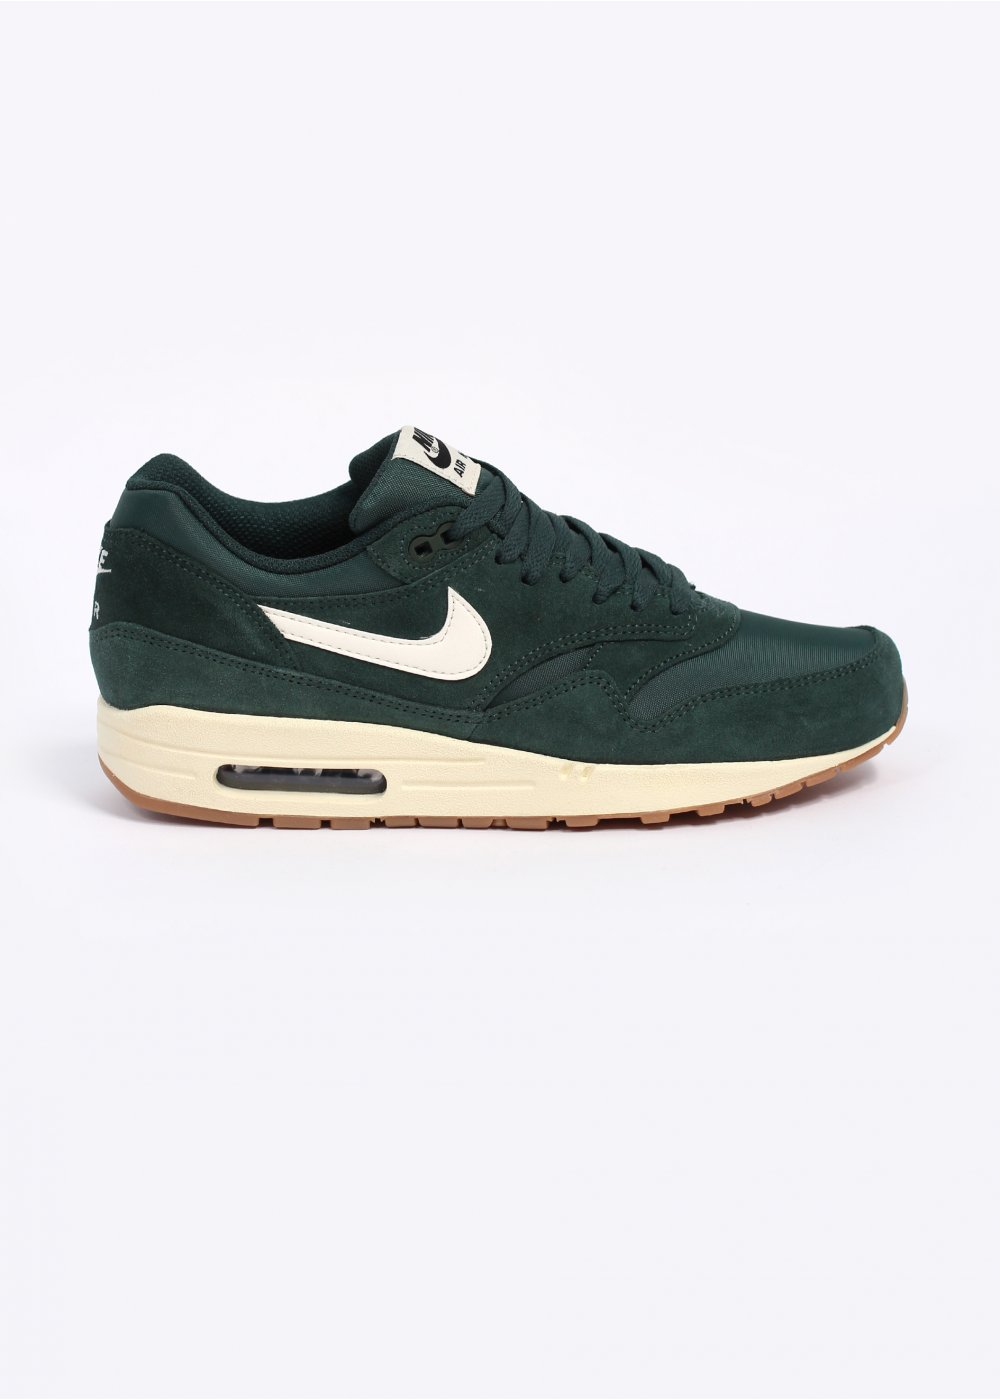 best sneakers d1440 cf380 Air Max 1 Essential Trainers - Pro Green   Sail